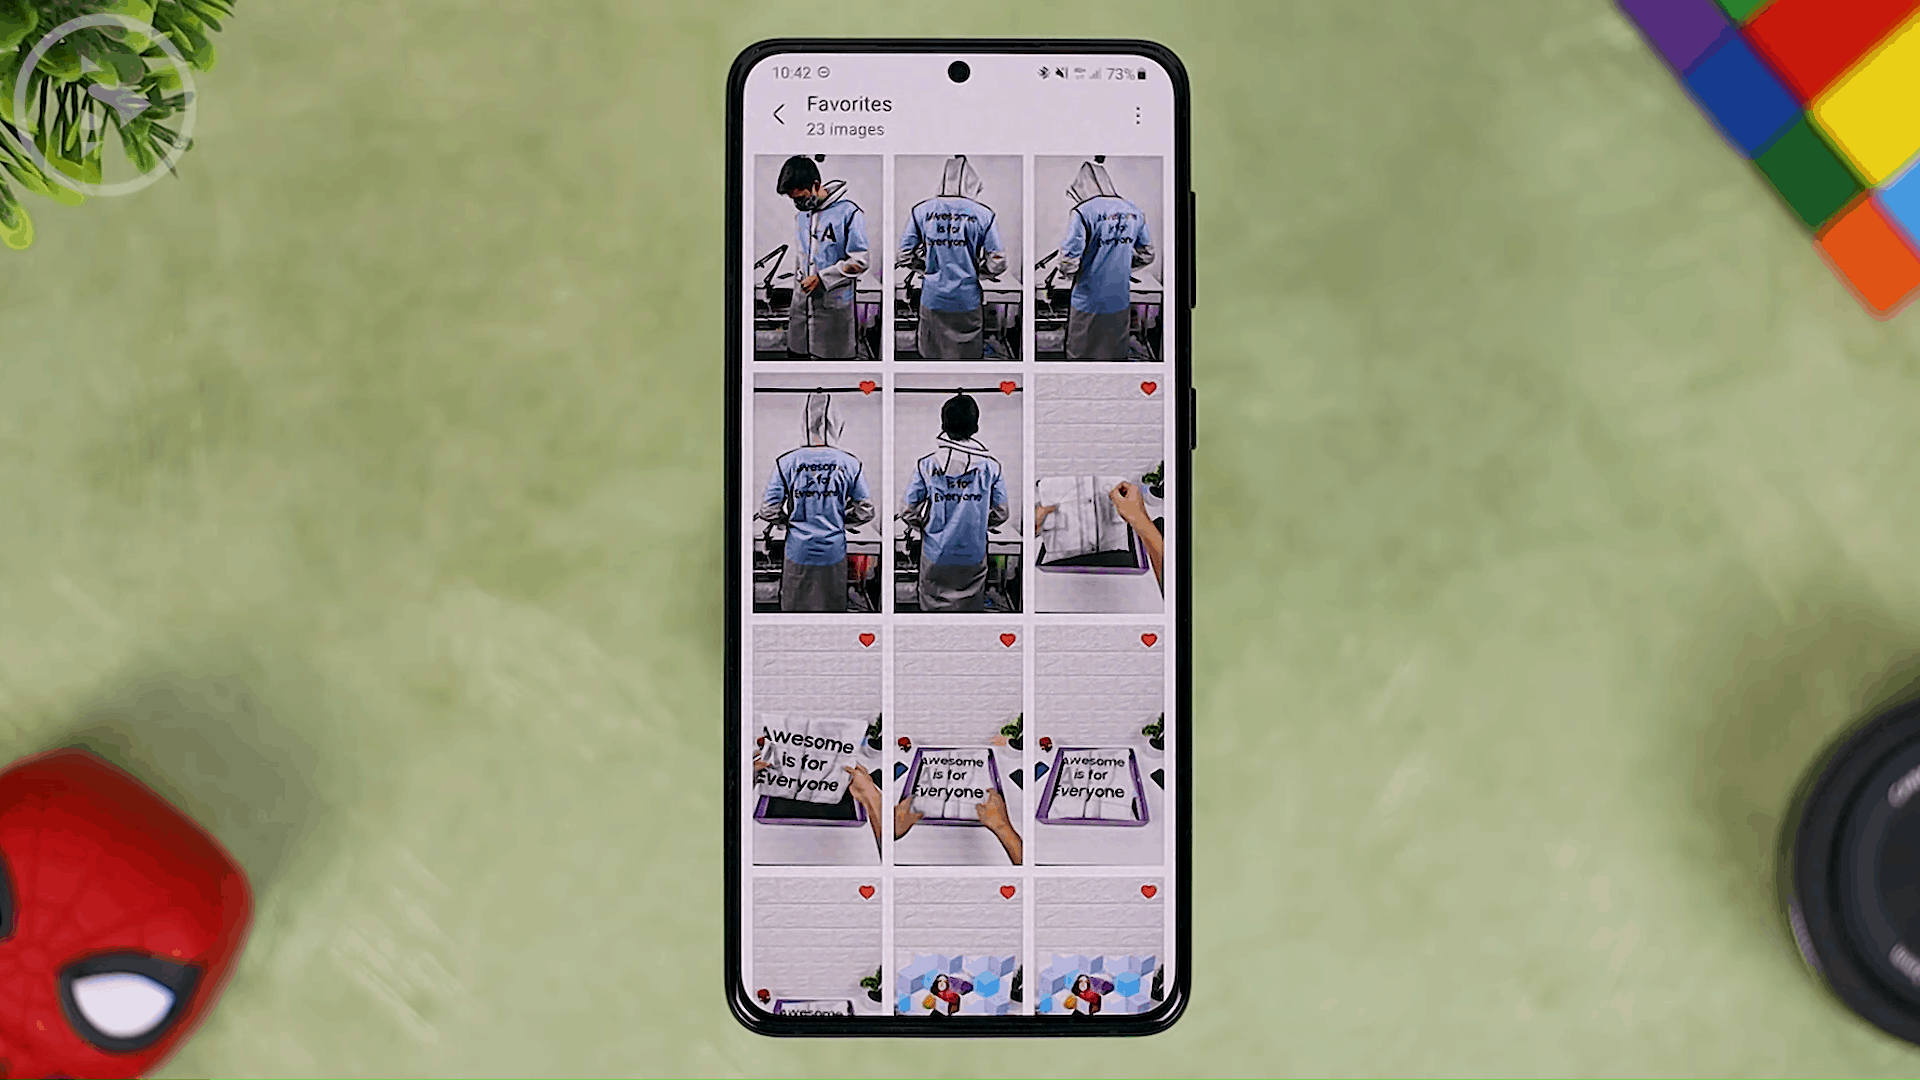 The Latest Photo and Video Editing Features - 4 Latest Features To Edit Photos and Videos in Various Versions of One UI Without Third Party Apps